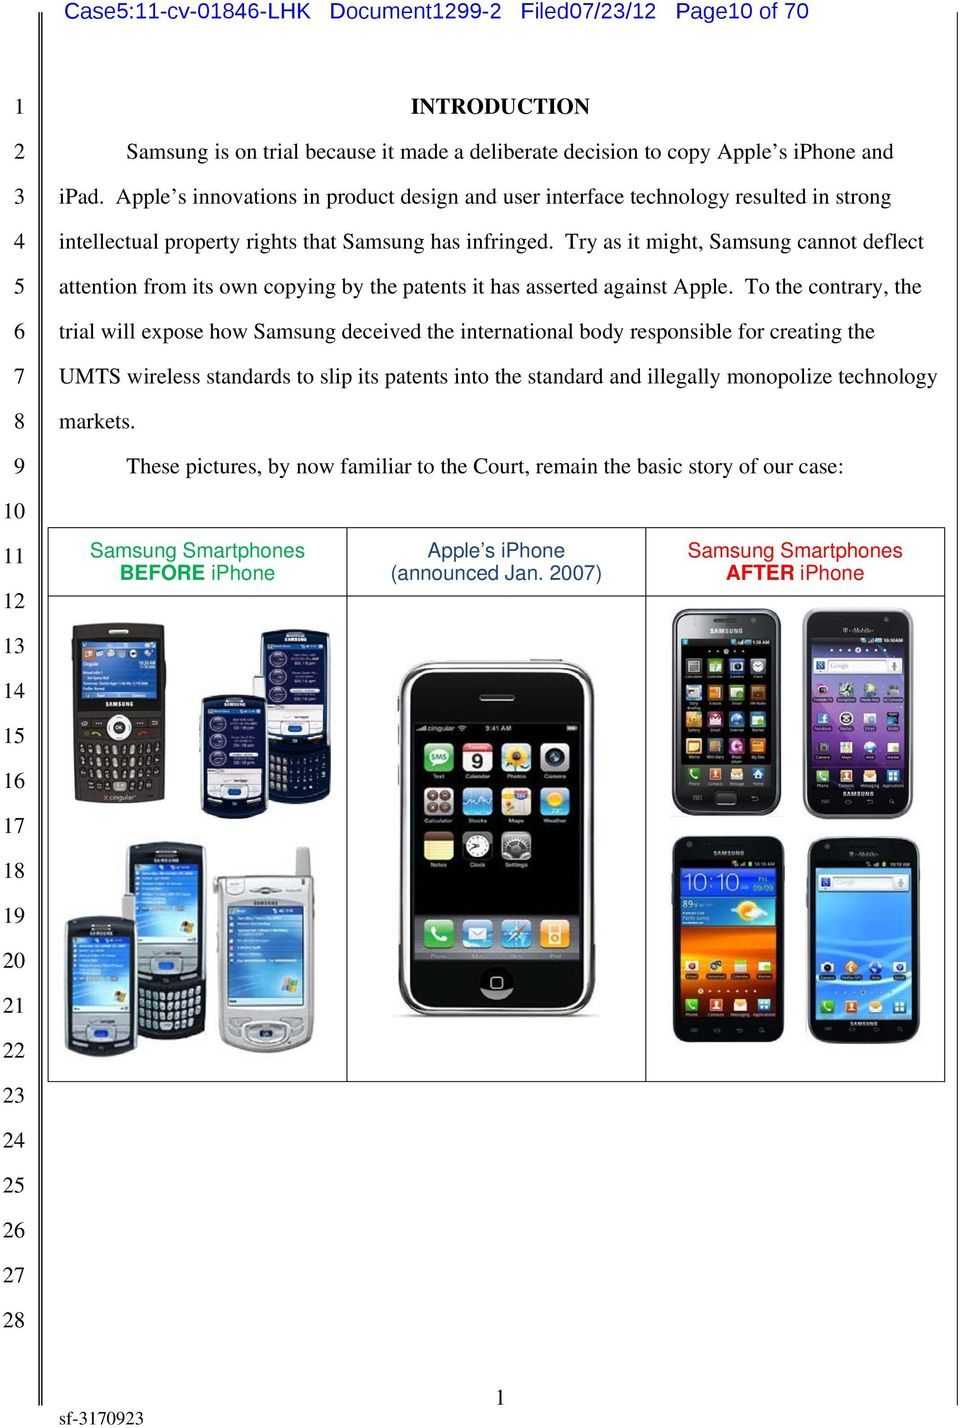 Try as it might, Samsung cannot deflect attention from its own copying by the patents it has asserted against Apple.